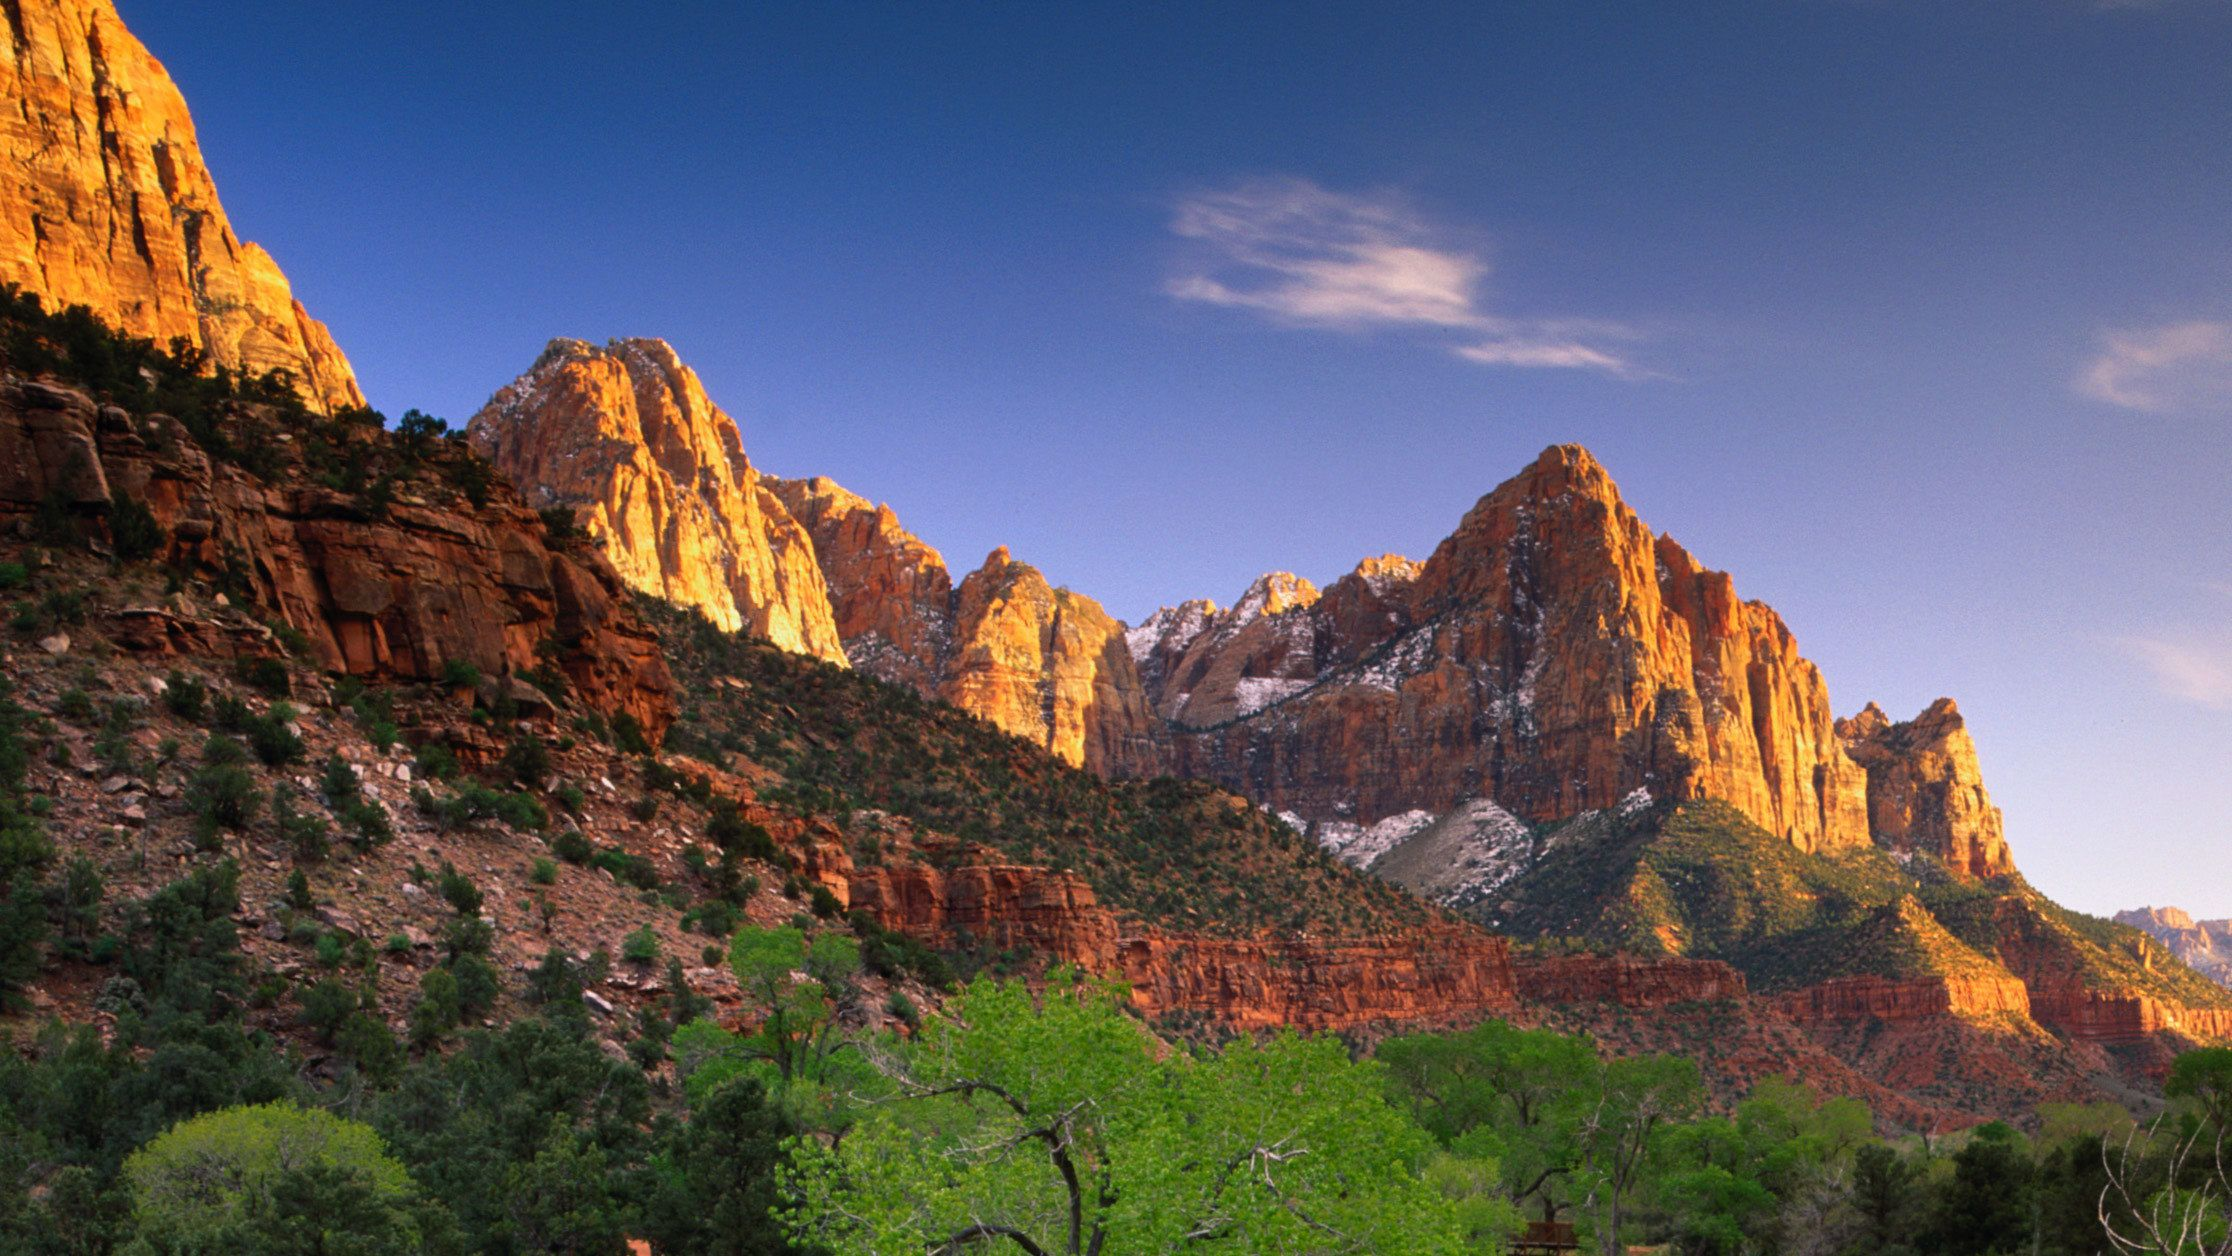 Zion National Park sunset view of the valleys